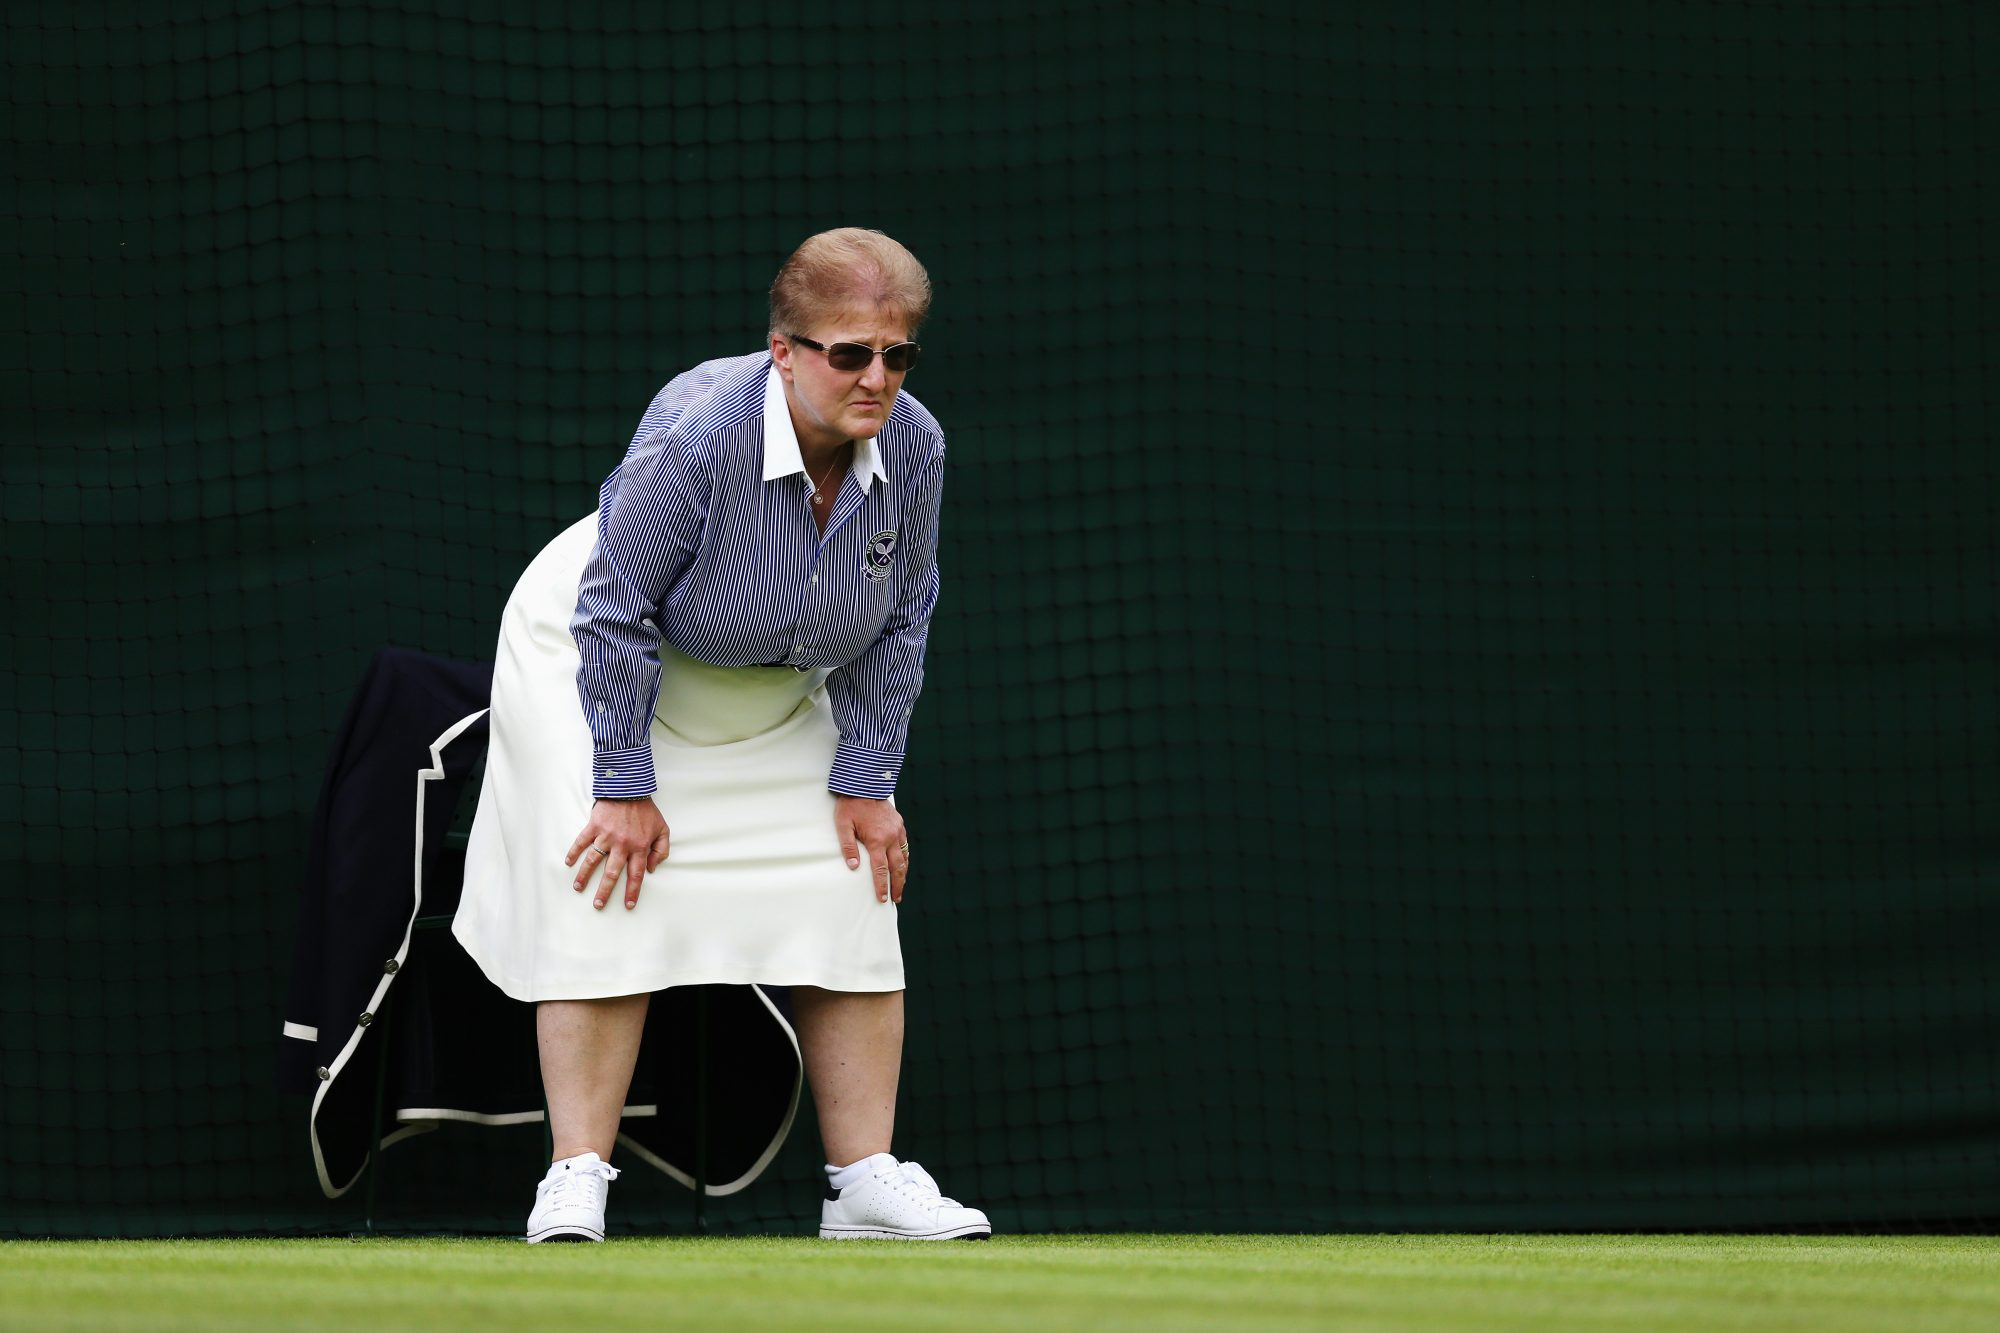 Day One: The Championships - Wimbledon 2014